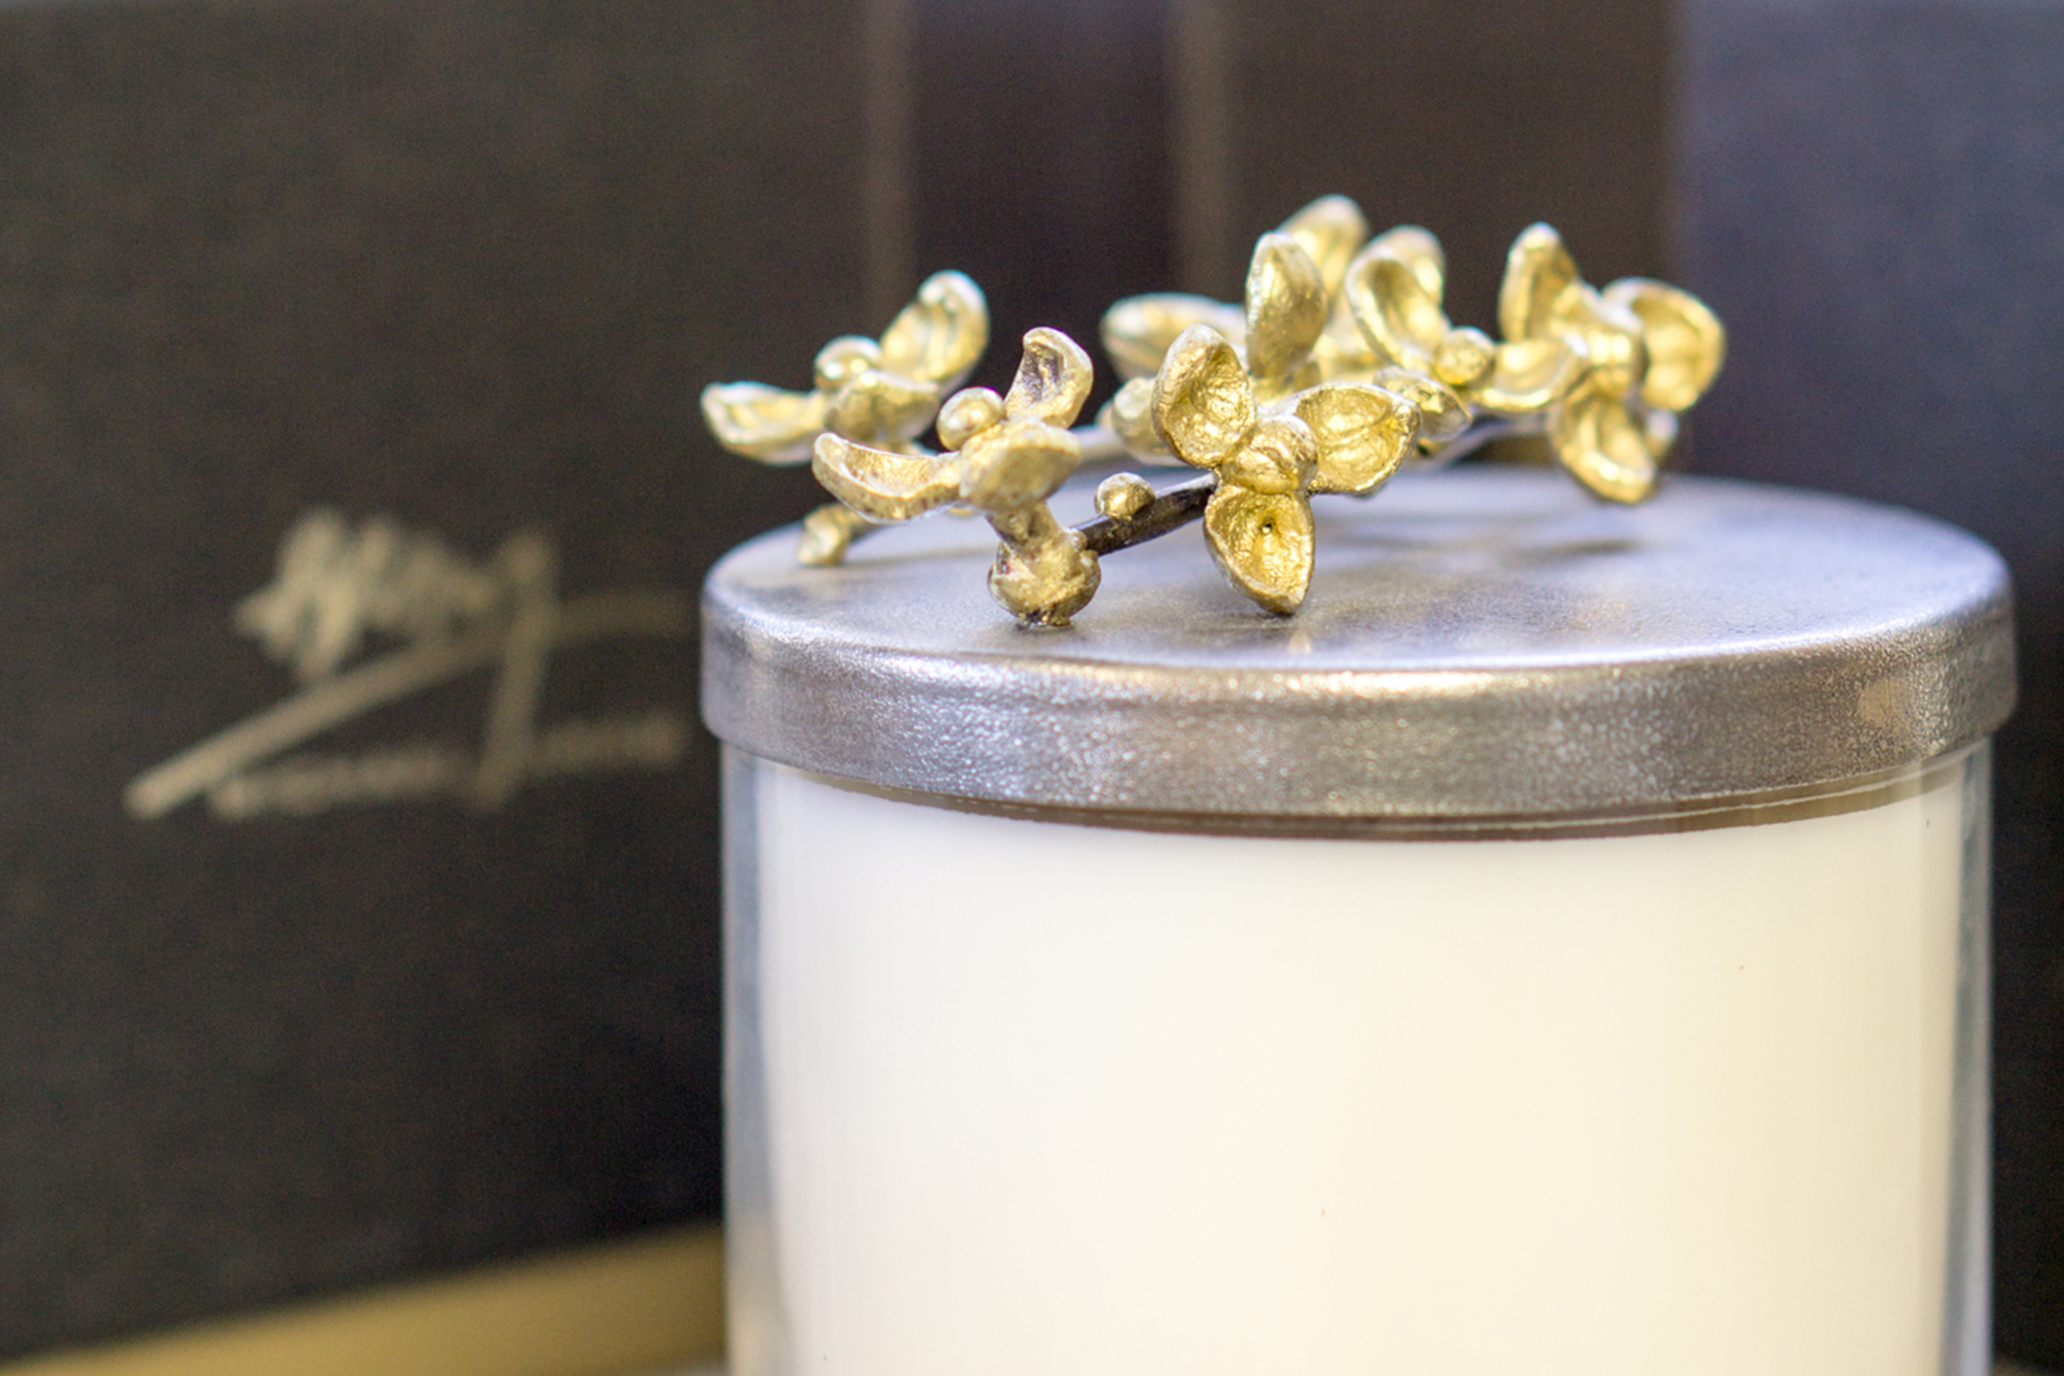 An image of a Michael Aram candle with gold orchid topper